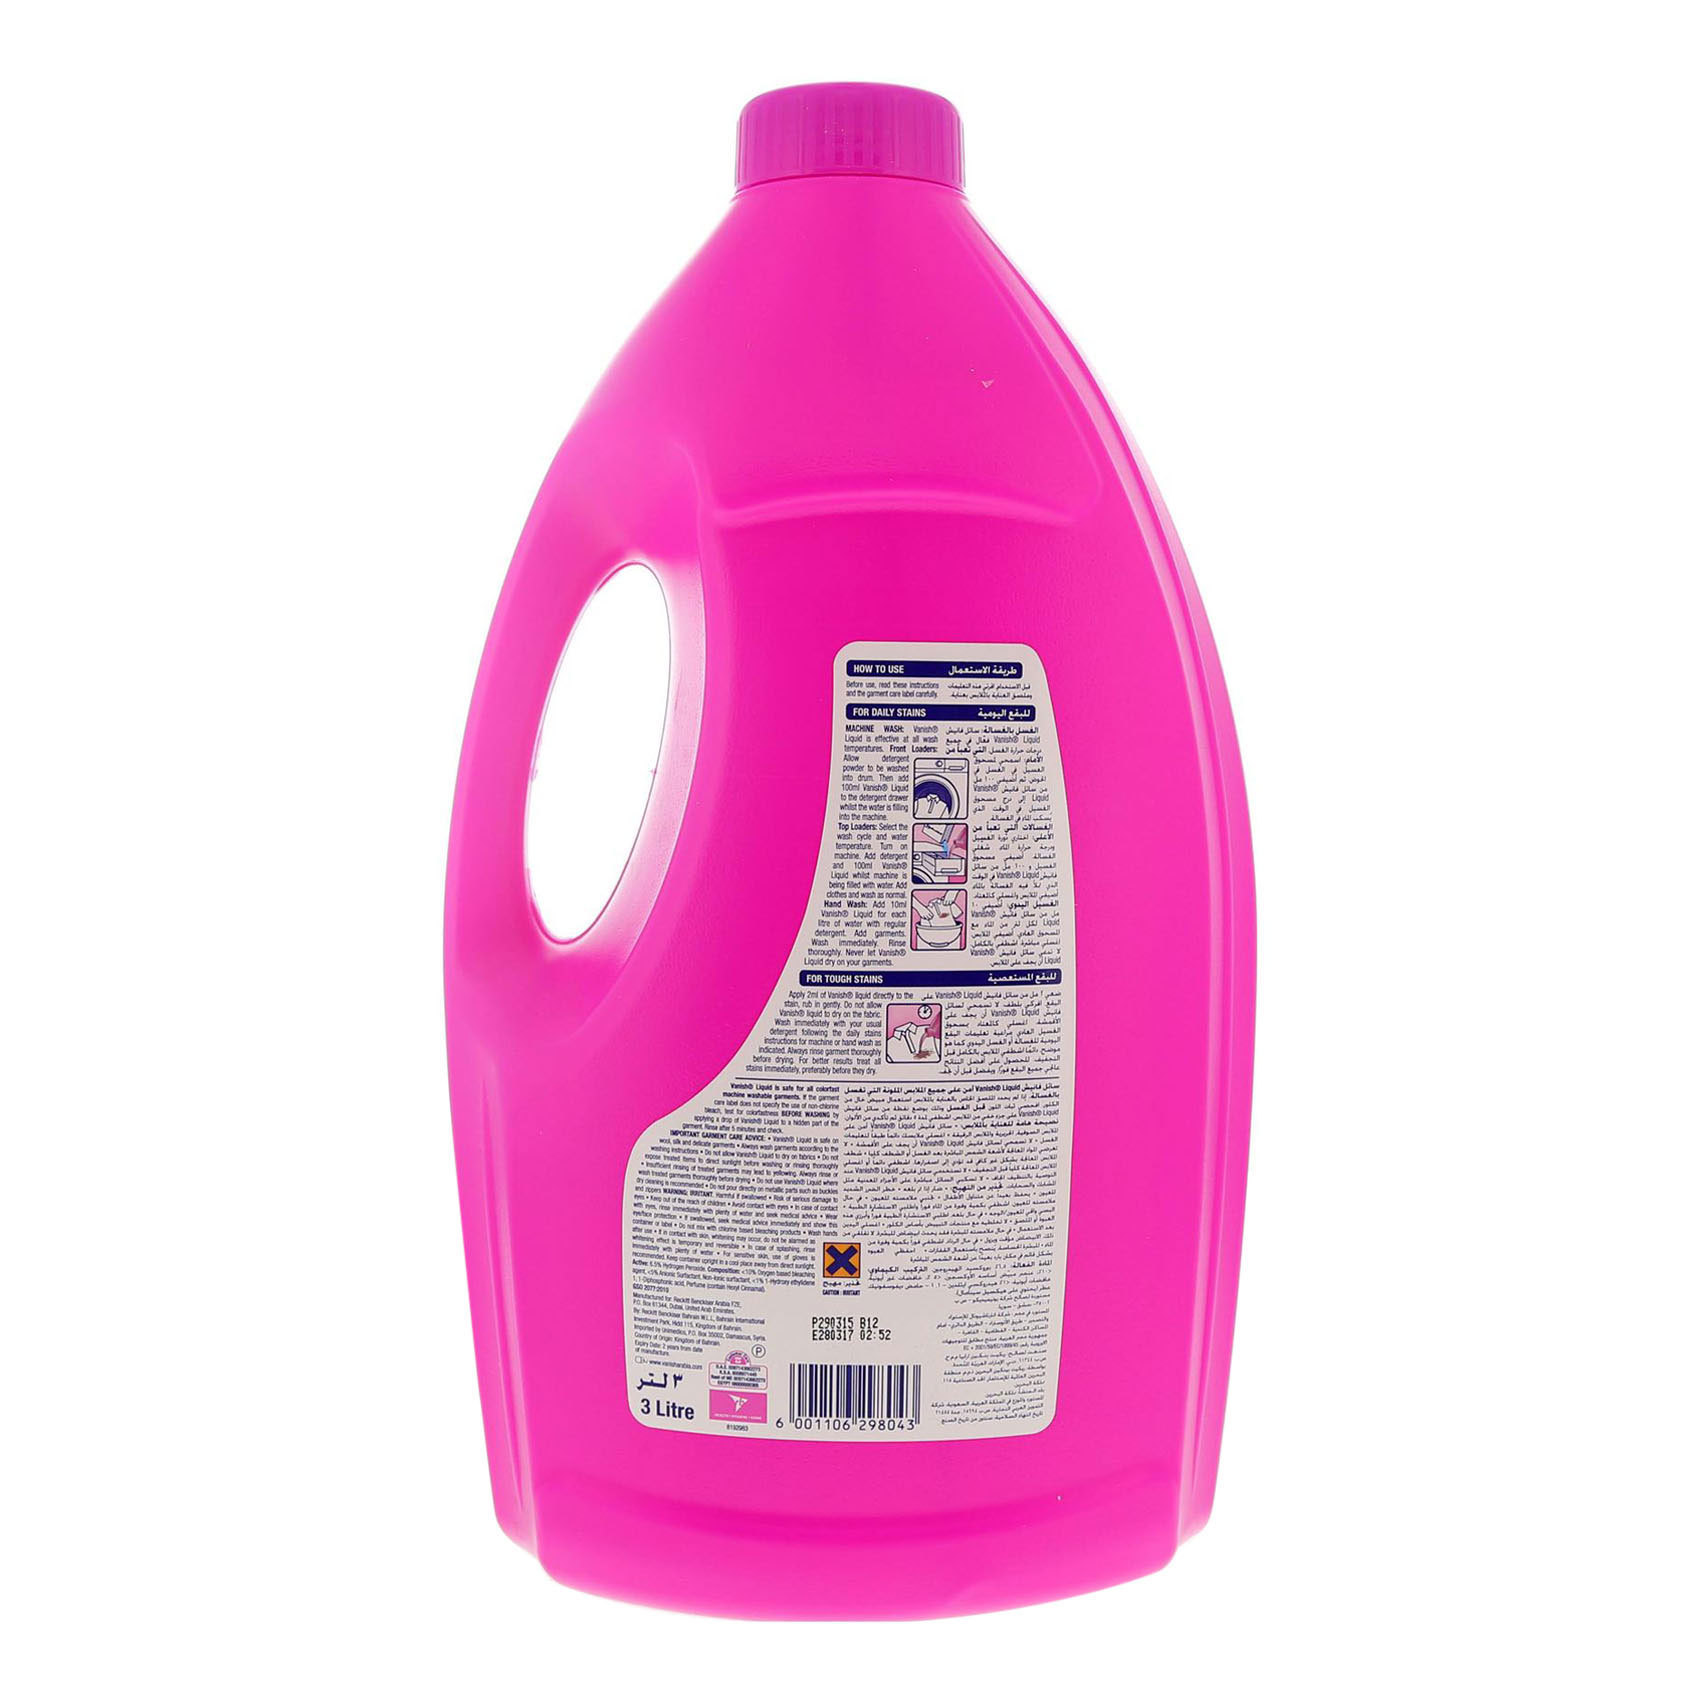 buy vanish multi use fabric stain remover 3l online in uae